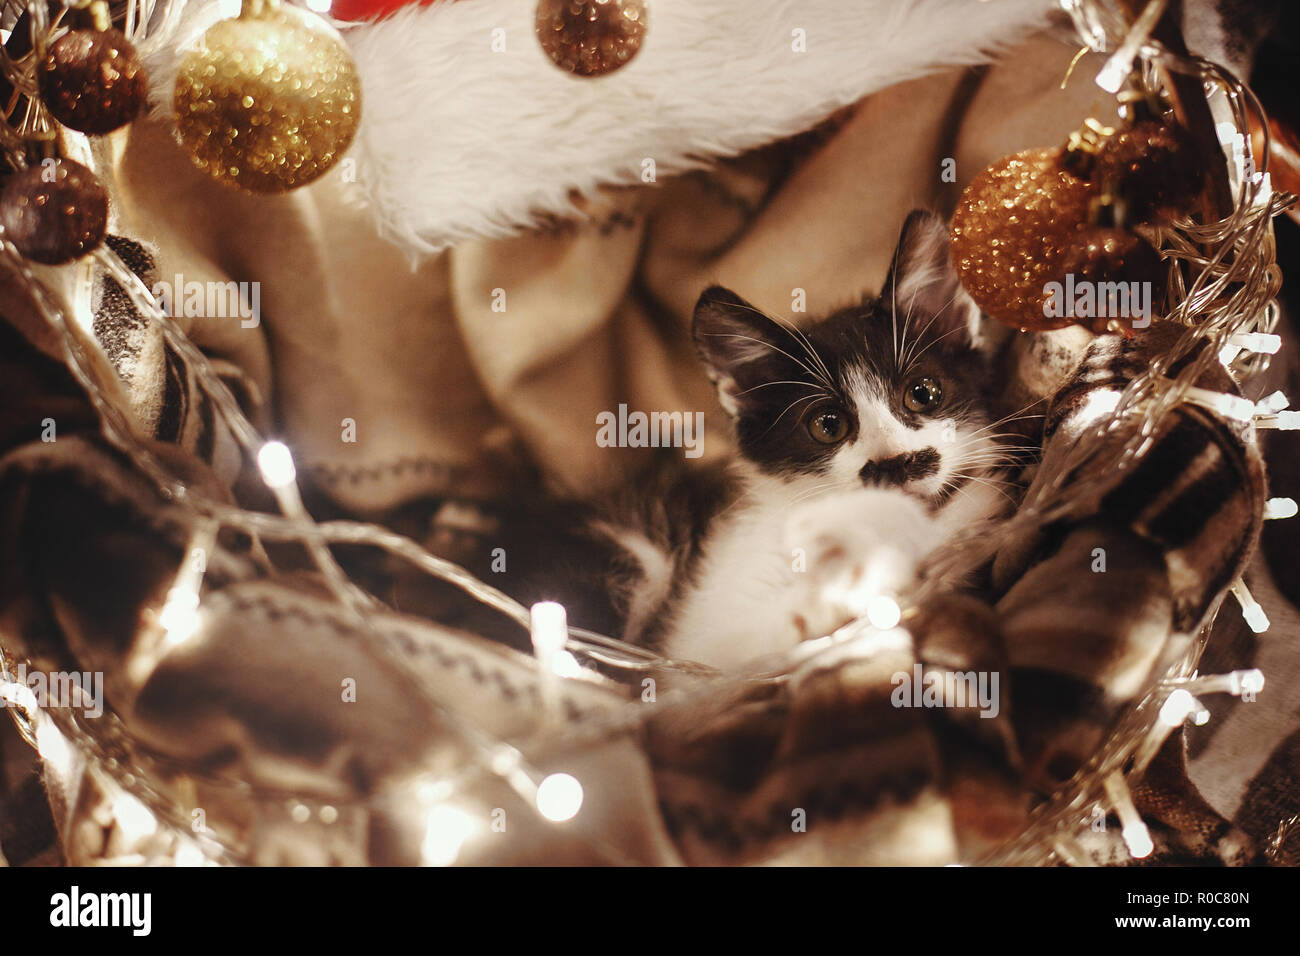 Cute kitty sitting in basket with garland lights under christmas tree in rustic room. Adorable funny kitten with amazing eyes. Merry Christmas concept - Stock Image